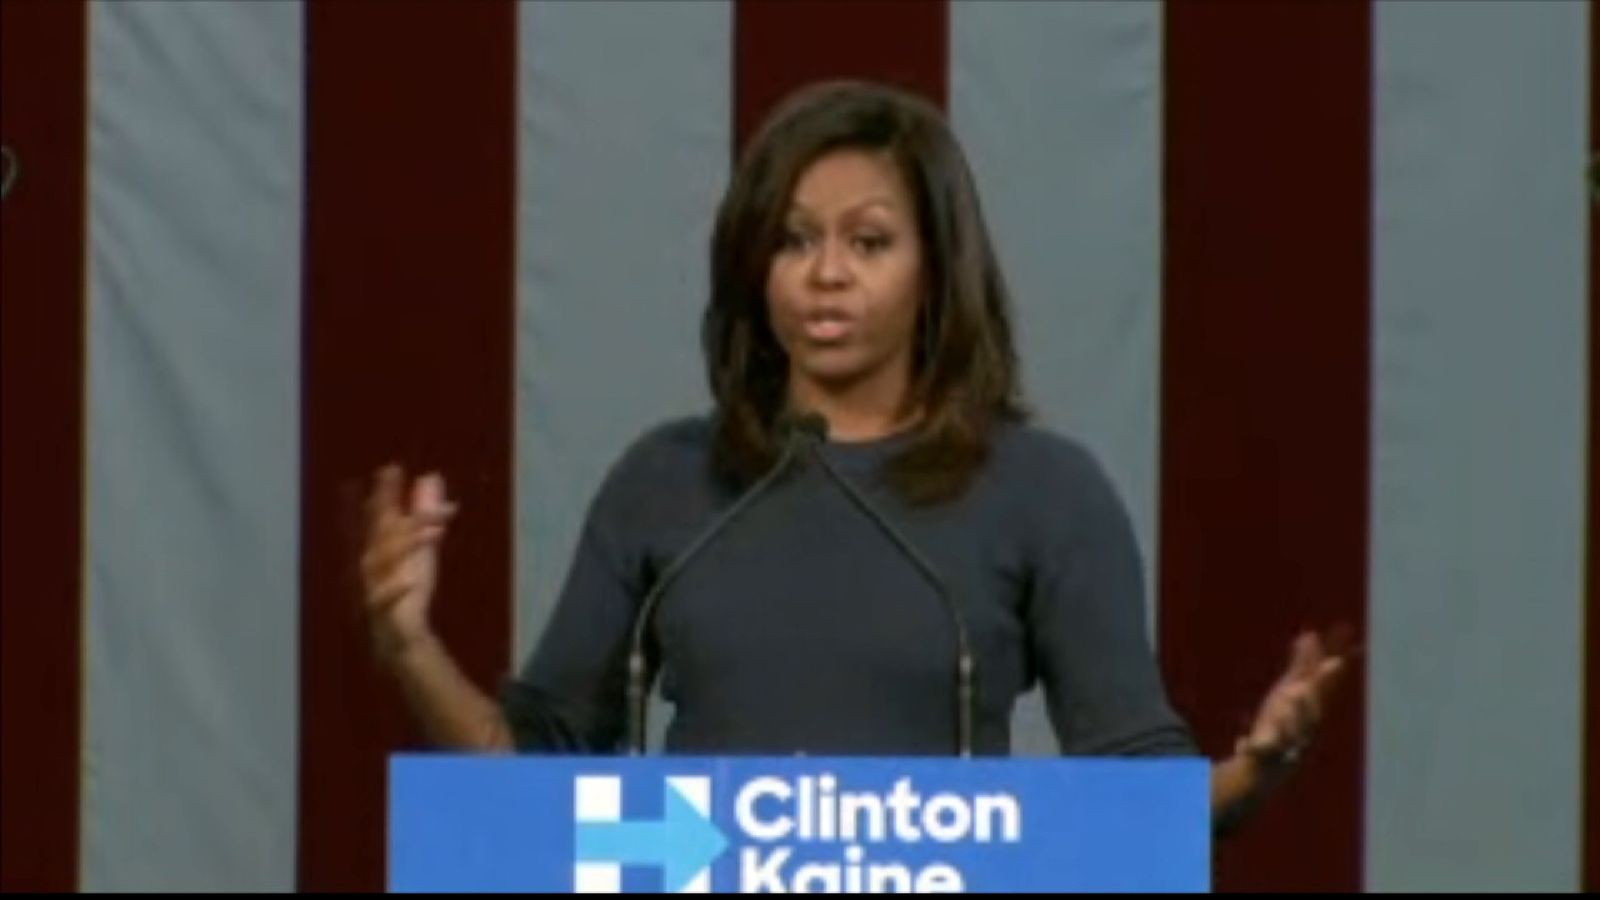 Michelle Obama slams Donald Trump during Hillary Clinton rally on October 13